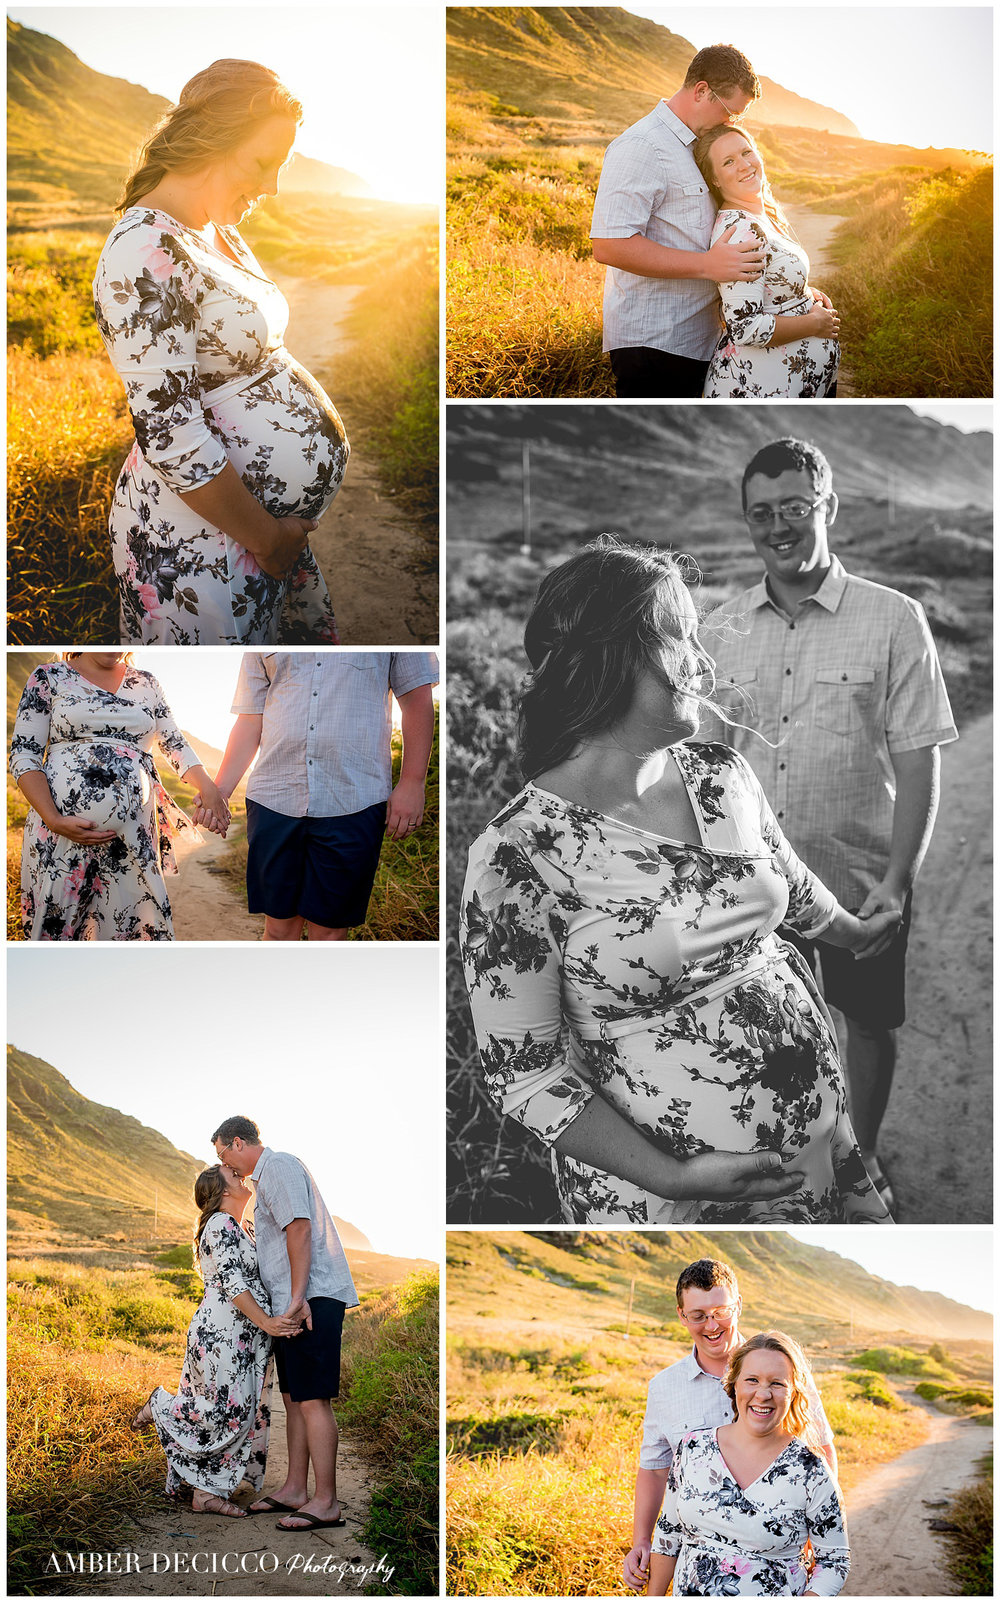 natural-maternity-photographs-amber-decicco-photography